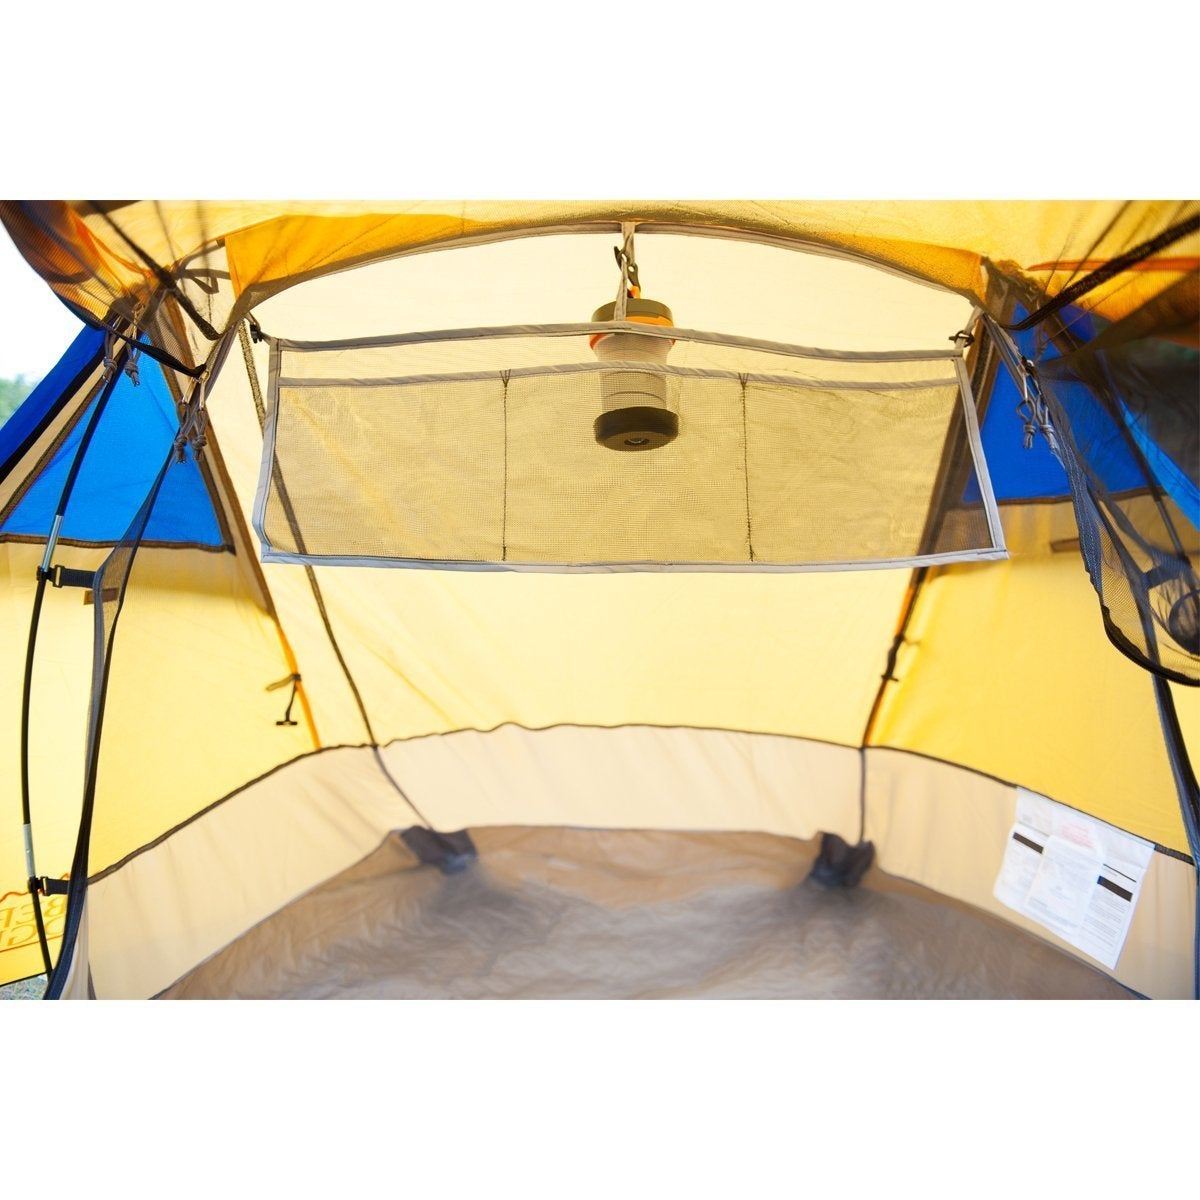 Timber Ridge Backpacking Tent - Free Shipping Today - Overstock.com - 20802910  sc 1 st  Overstock.com & Timber Ridge Backpacking Tent - Free Shipping Today - Overstock ...